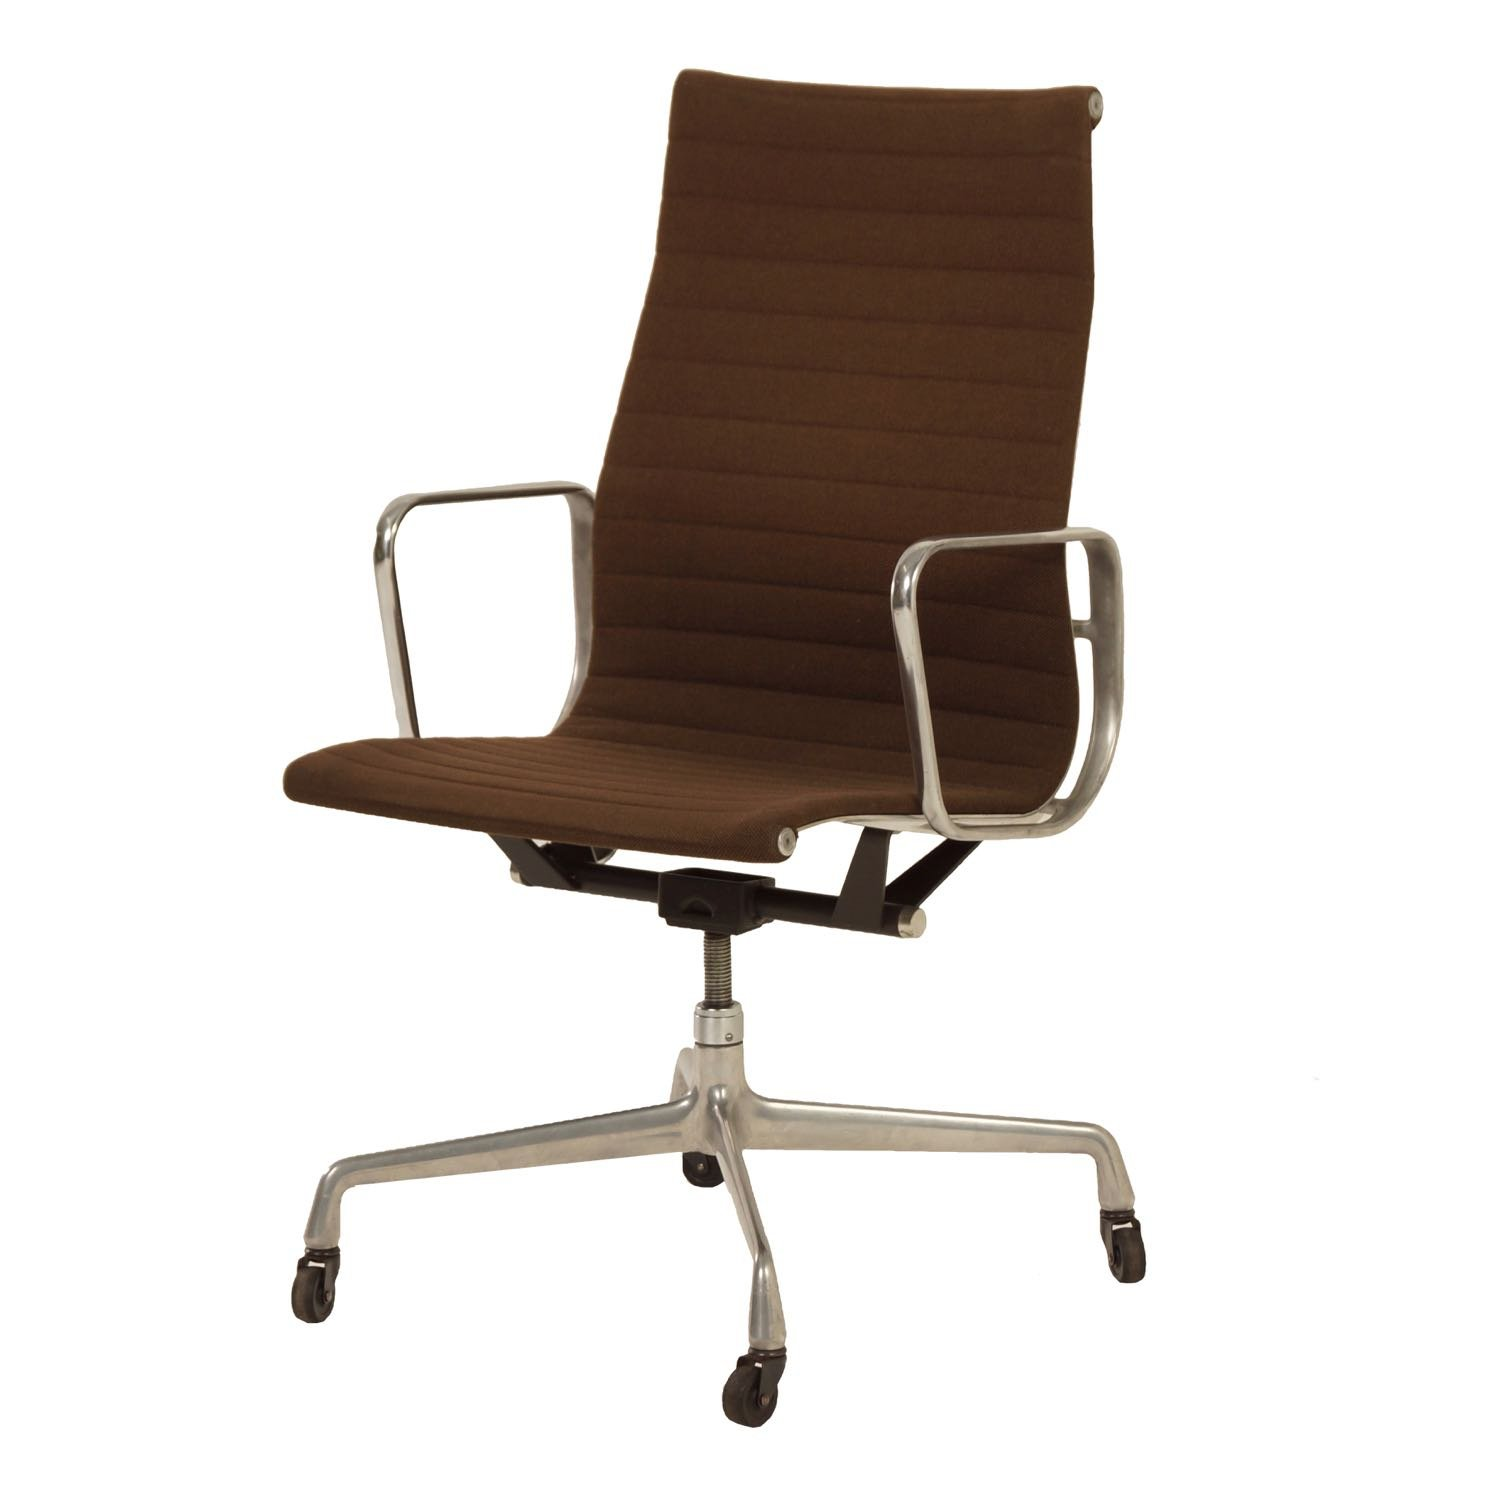 Charles Eames Original Eames Office Chair By Charles Ray Eames For Herman Miller 1960s